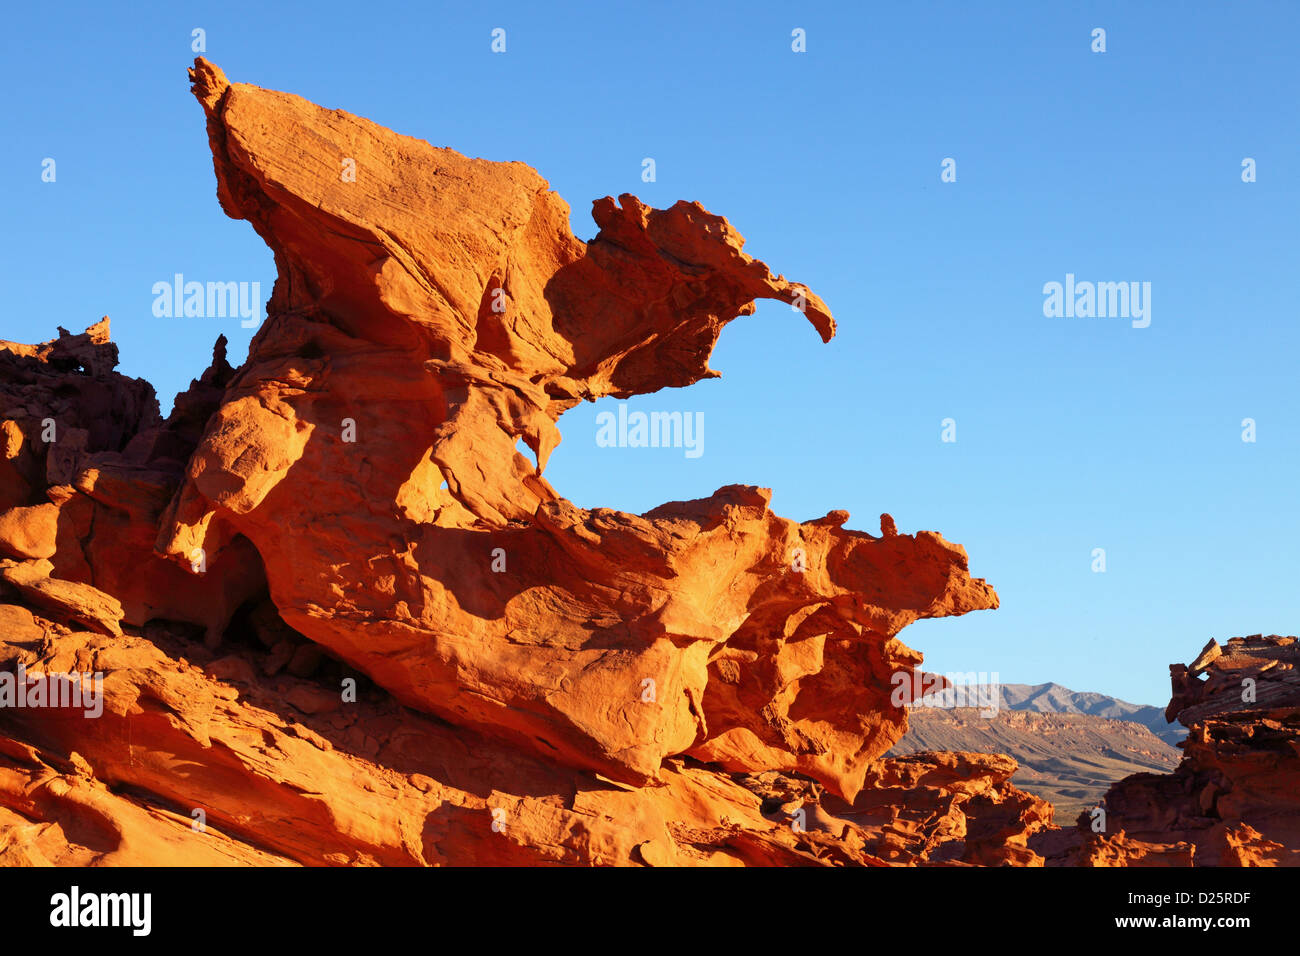 The Raptor, Little Finland, Hobgoblins Playground, Gold Butte Scenic Back Road, NV, USA - Stock Image